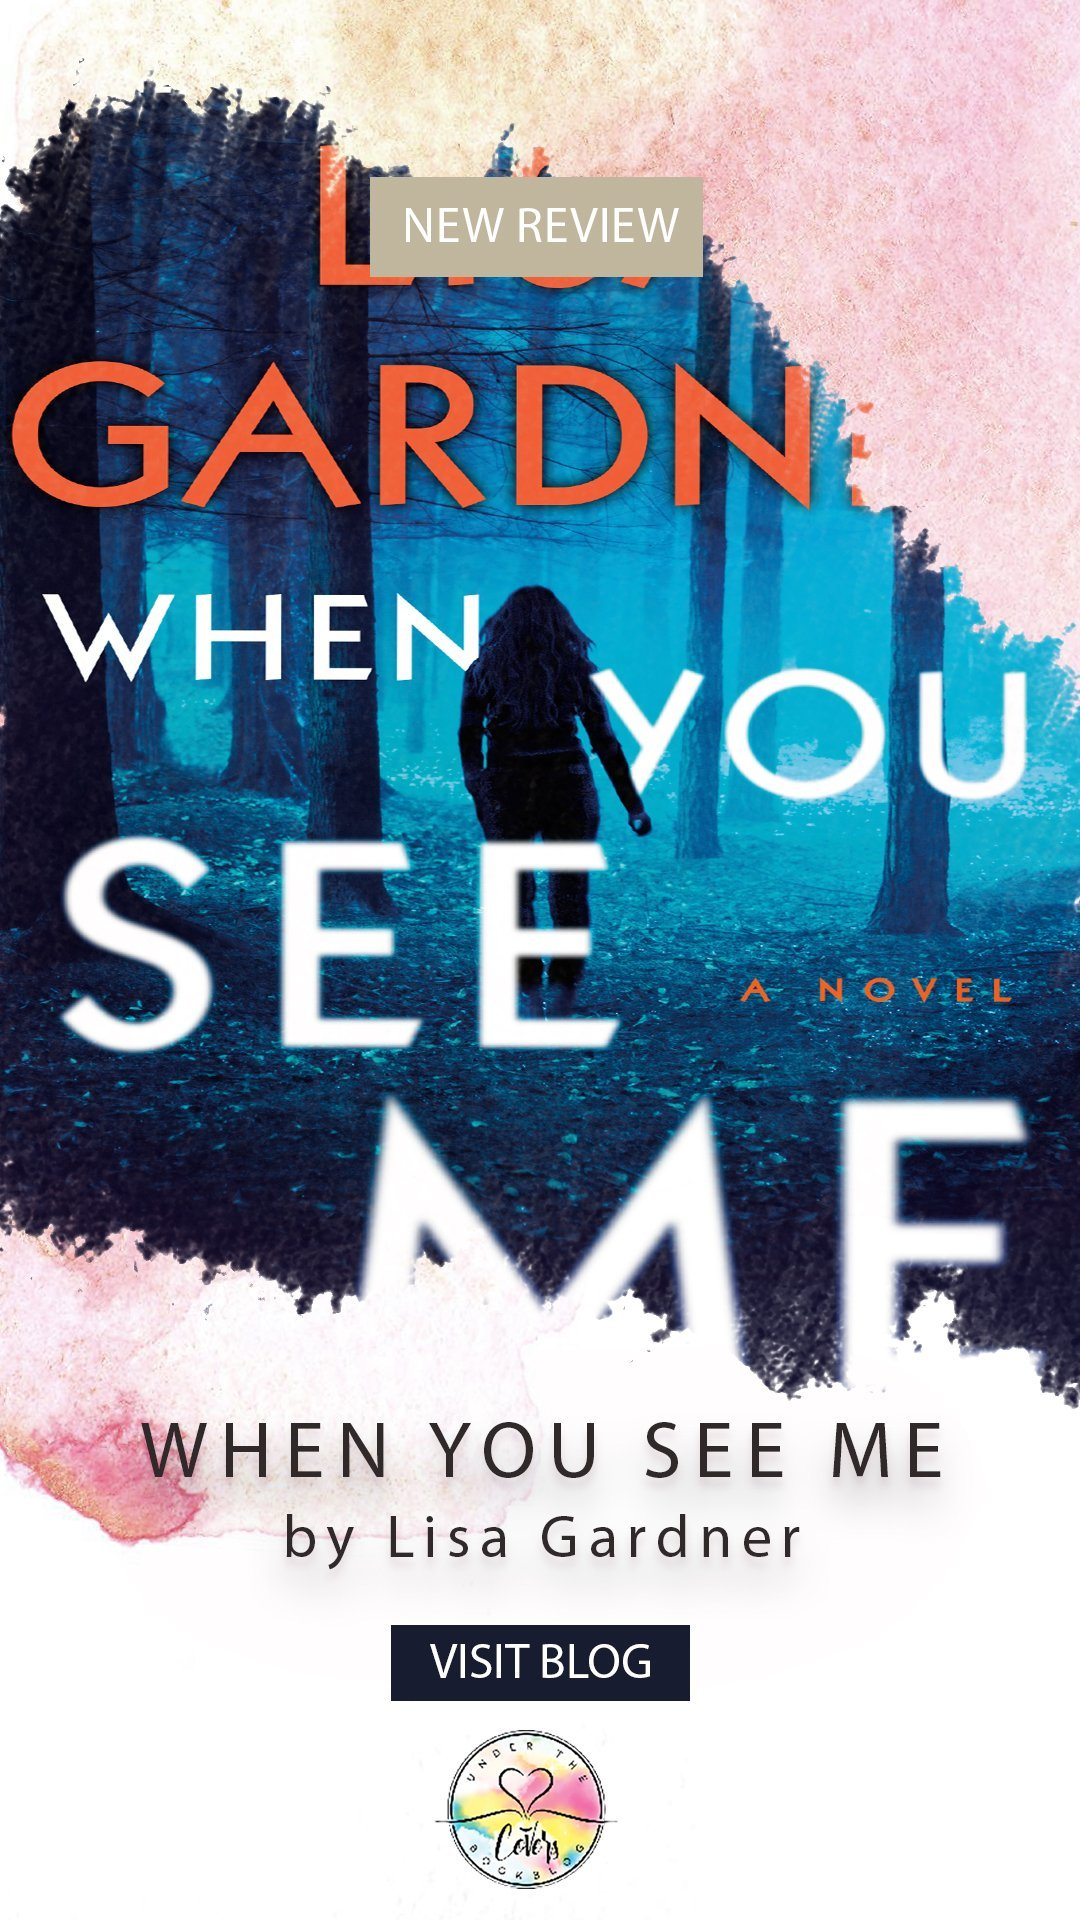 ARC Review: When You See Me by Lisa Gardner